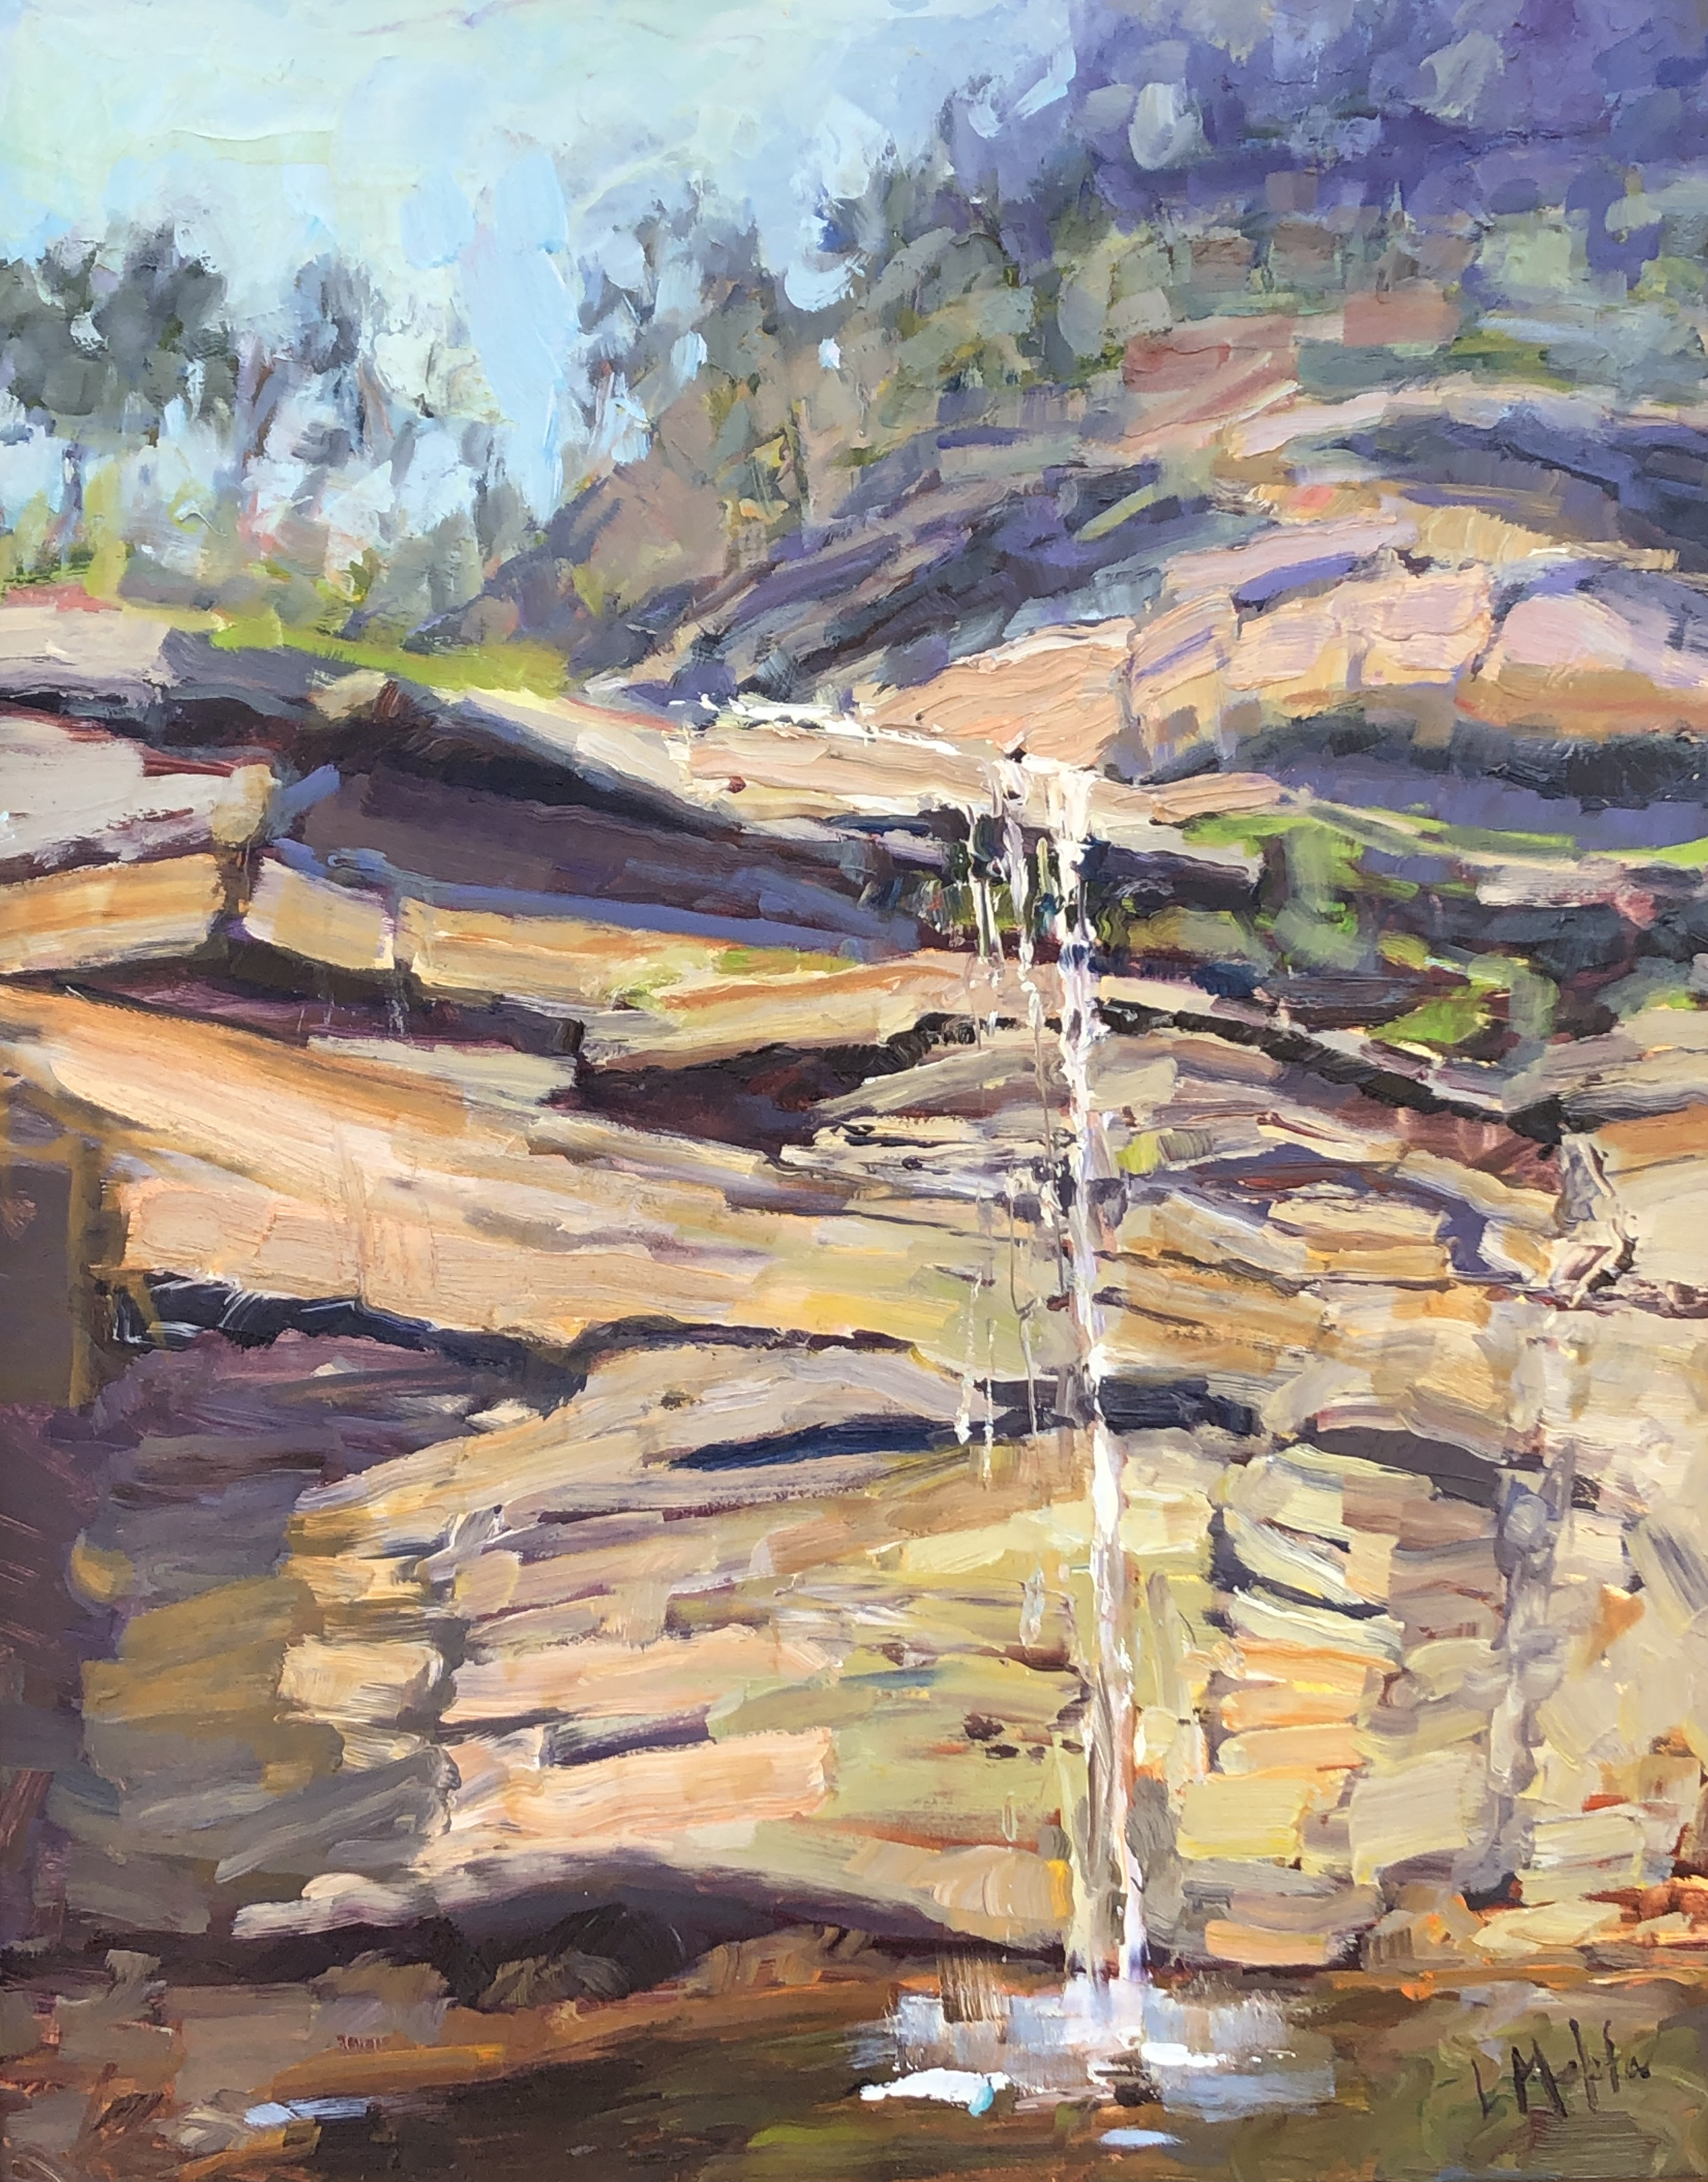 HiddenFalls-Mehta, oil 20x16 $2000